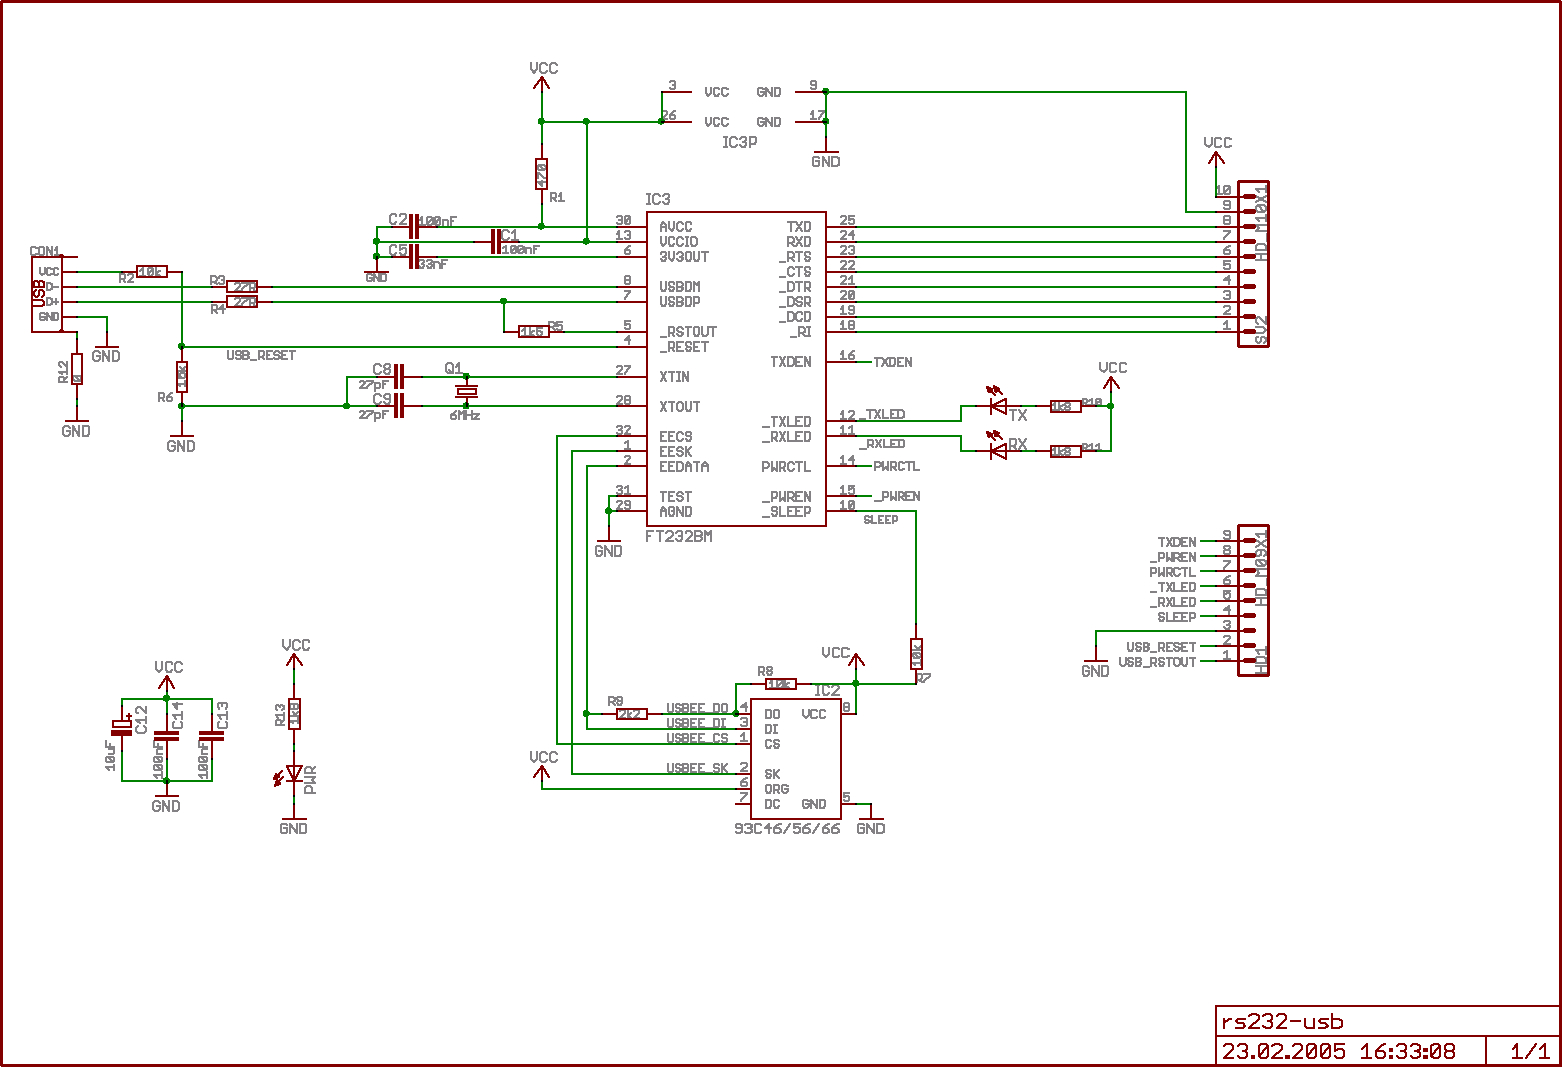 Usb To Rs485 Converter Wiring Diagram - New Era Of Wiring Diagram • - Usb To Rs485 Converter Wiring Diagram